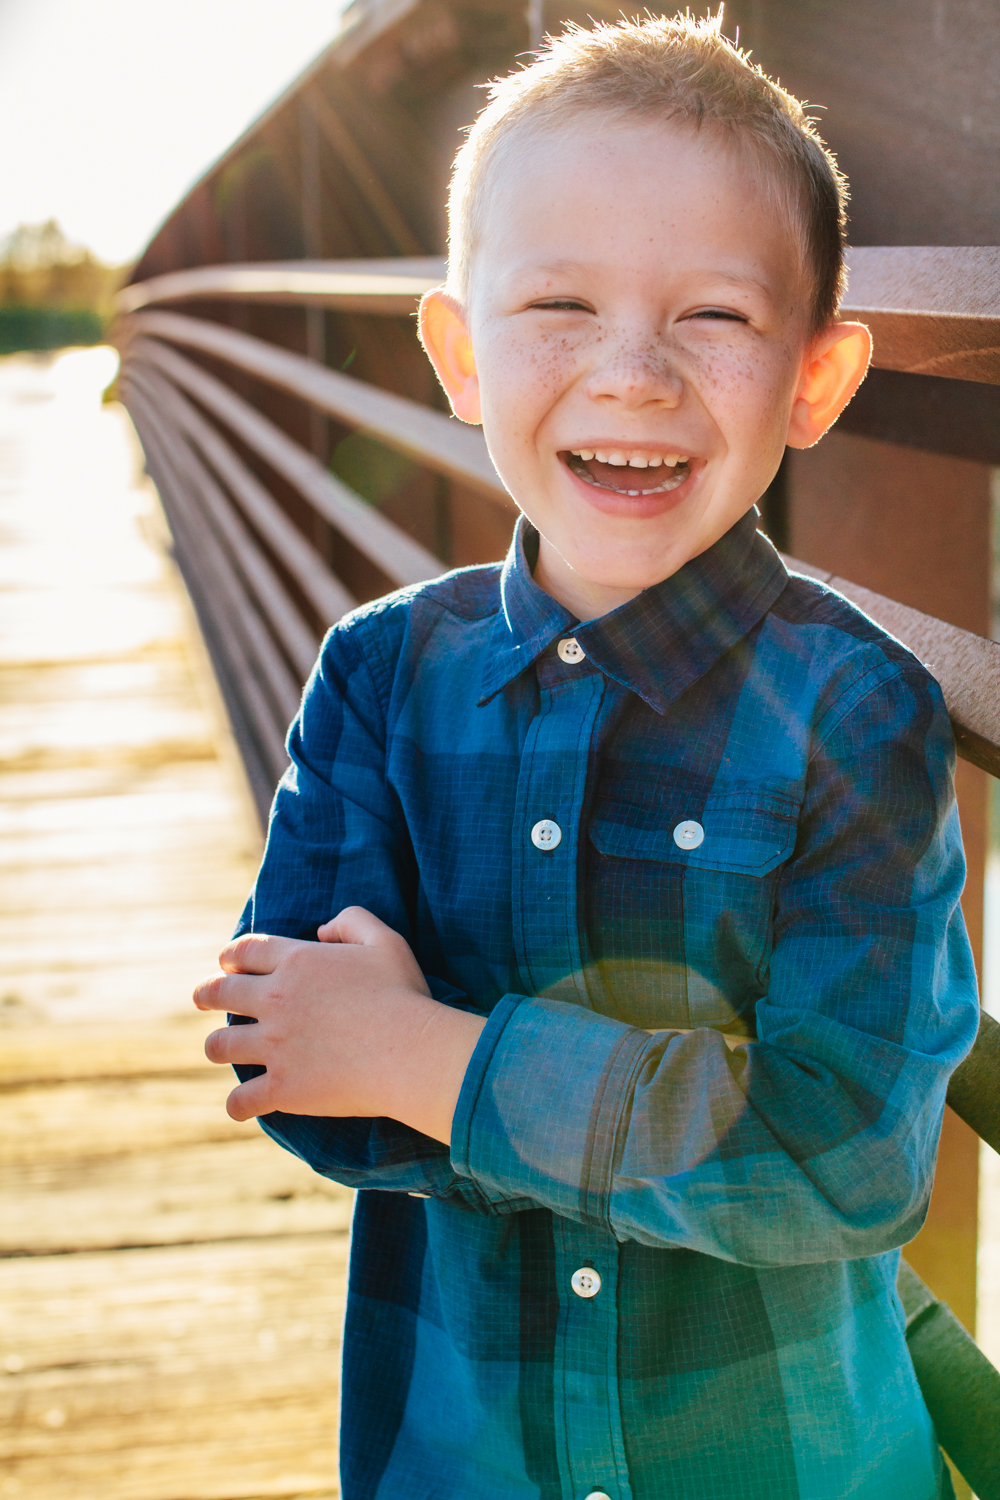 elsa creates, elsa, creates, elsa jensen, utah photographer, utah family photographer, family pictures, family, photographer, utah, families, boys, brothers, siblings, kids, kid portraits, families, big brother, big sister, little brother, little sister, siblings portrait, baby, utah family, in home, christmas card,